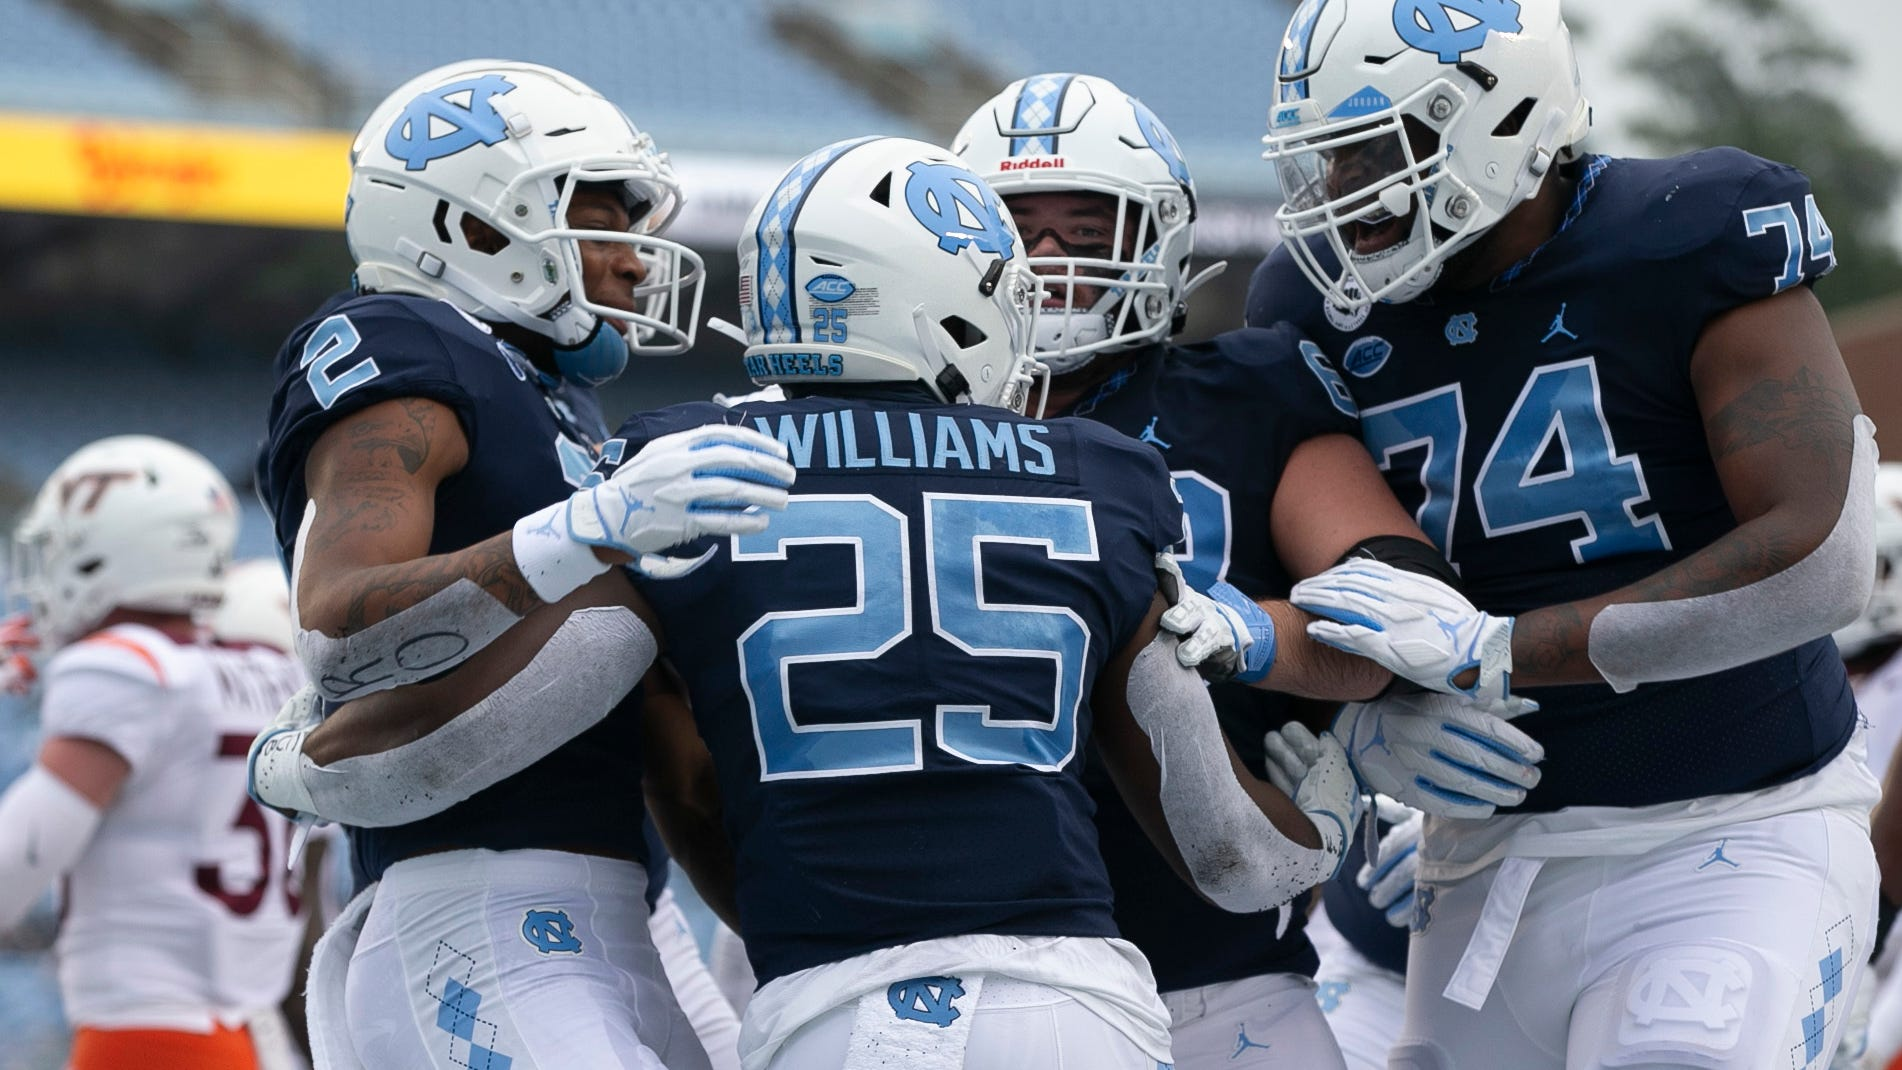 Running back Javonte Williams celebrates with North Carolina teammates including receiver Dyami Brown, left, and offensive lineman Jordan Tucker, right, after scoring last week against Virginia Tech.